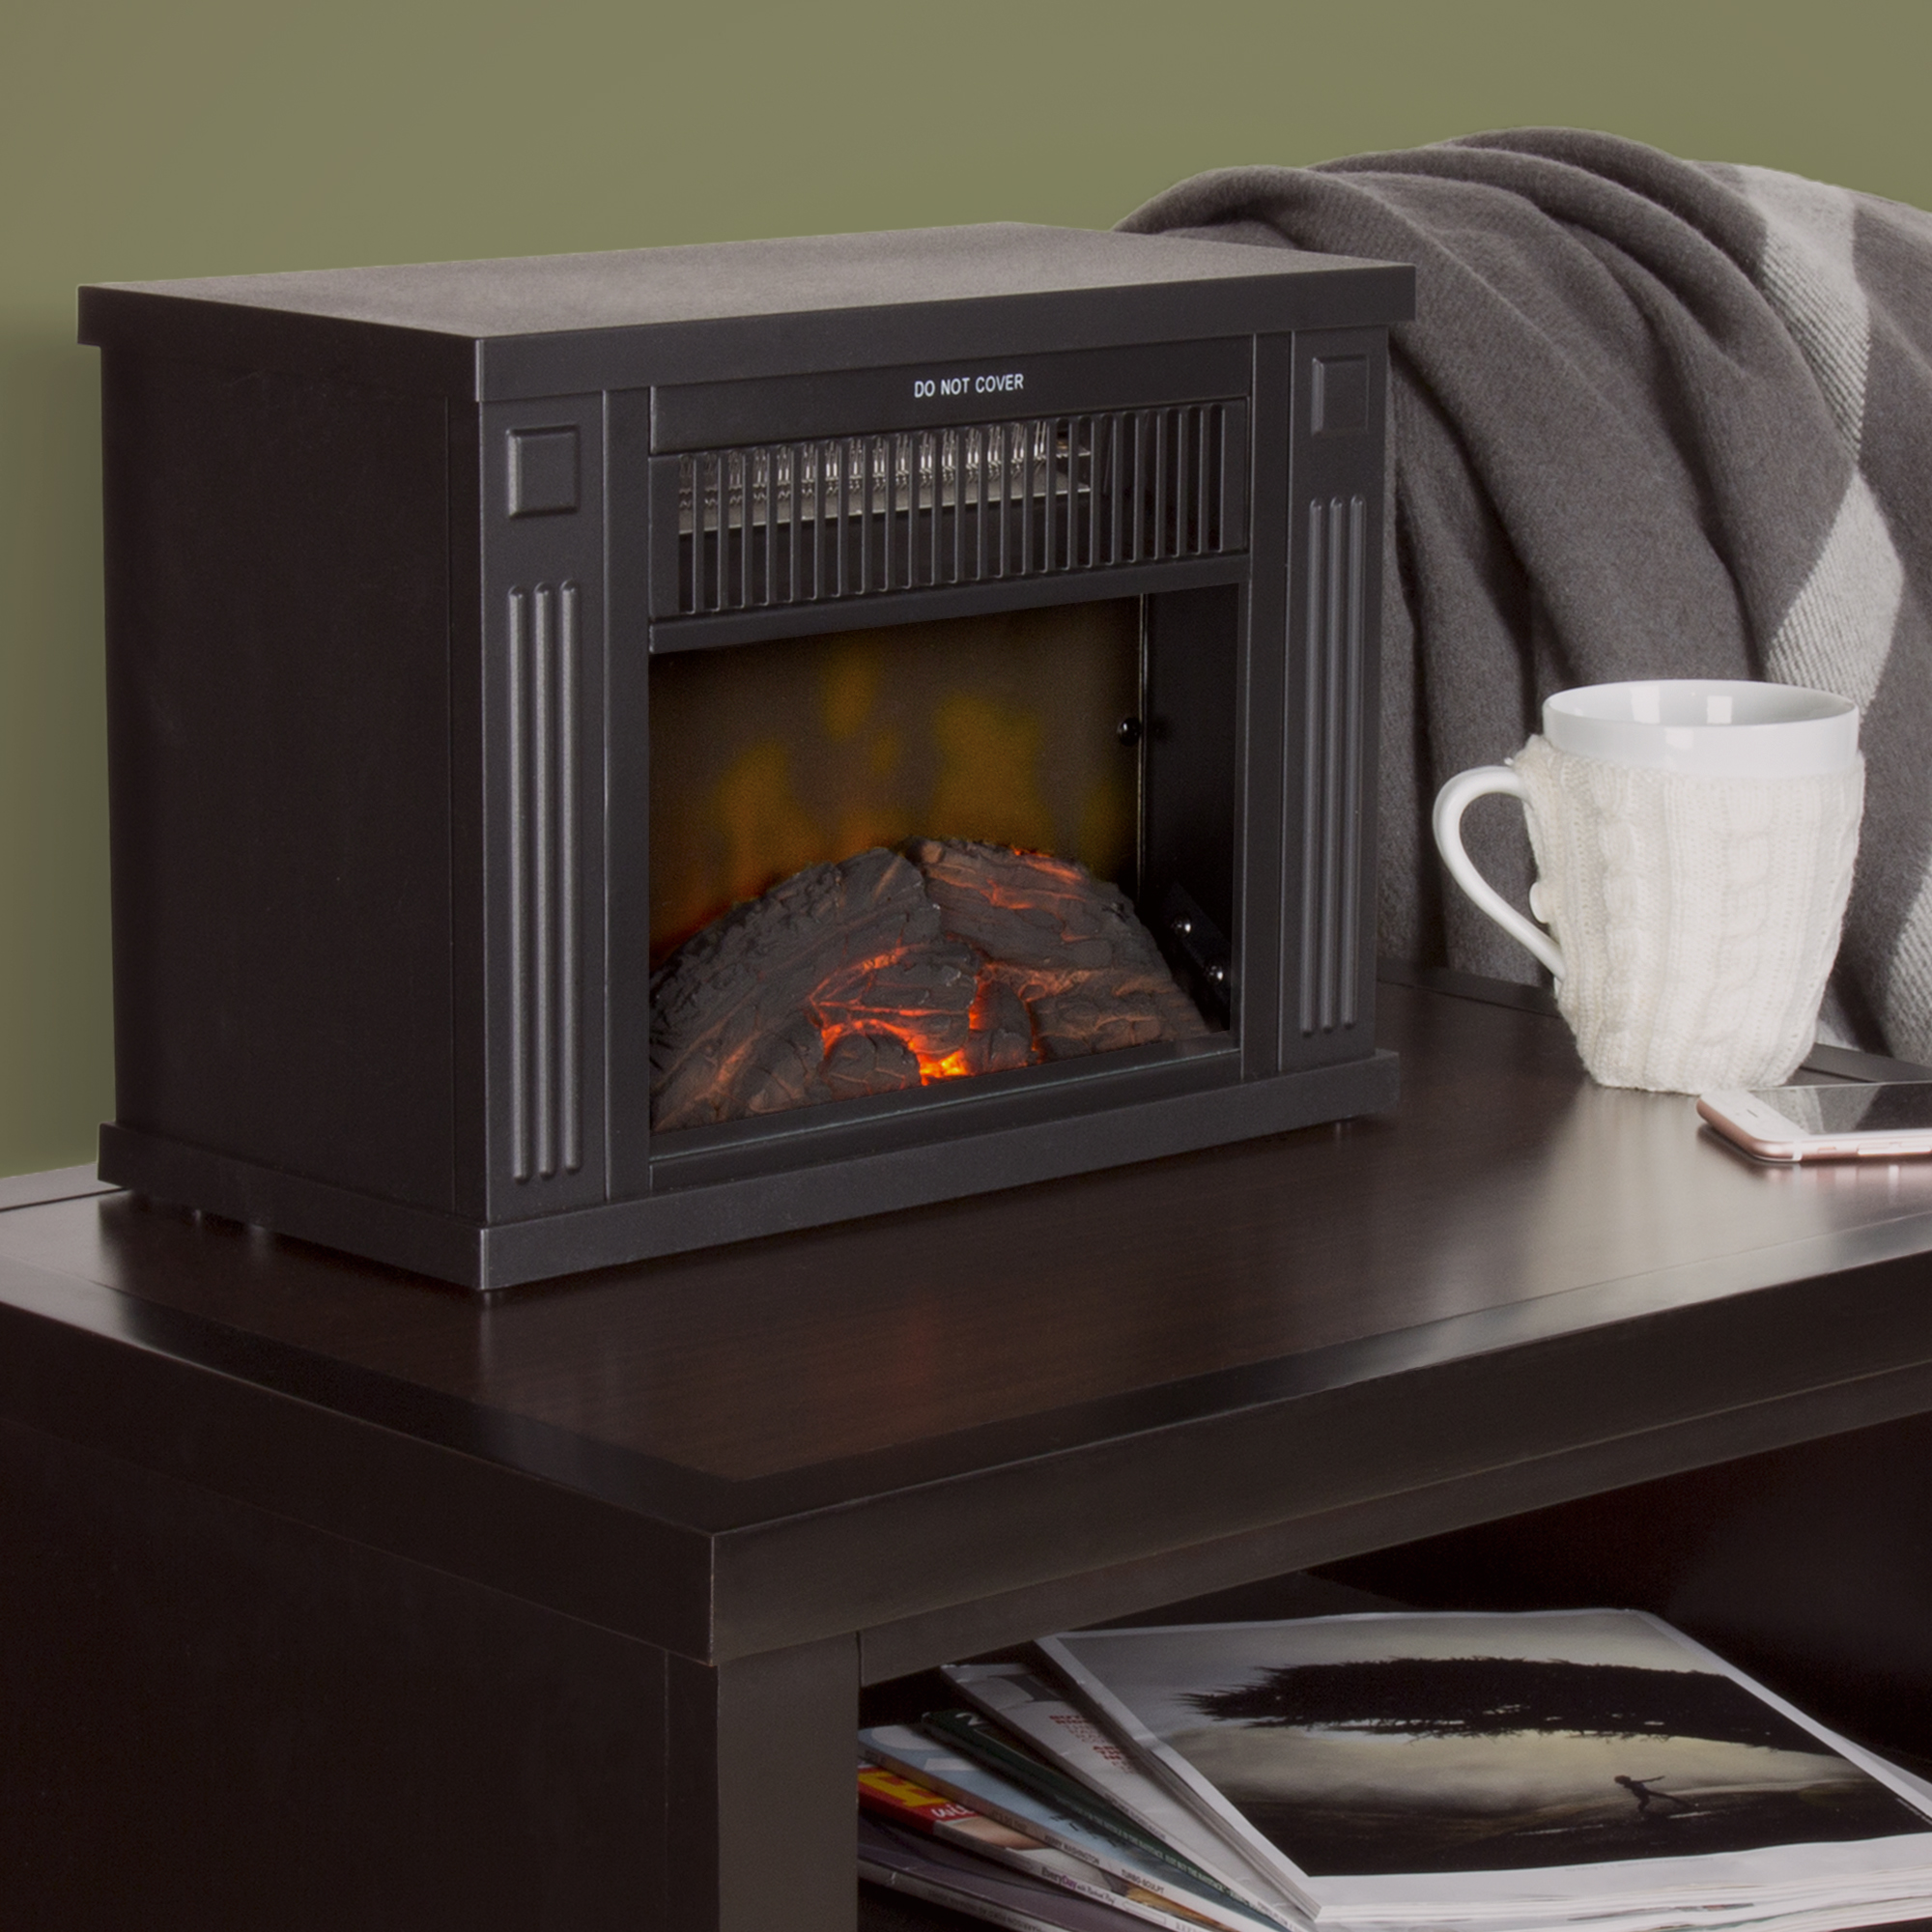 Northwest Mini Portable Electric Fireplace Heater Modern Design Of Small Wiring Diagram 13 Walmart Com Rh Duraflame Replacement Parts